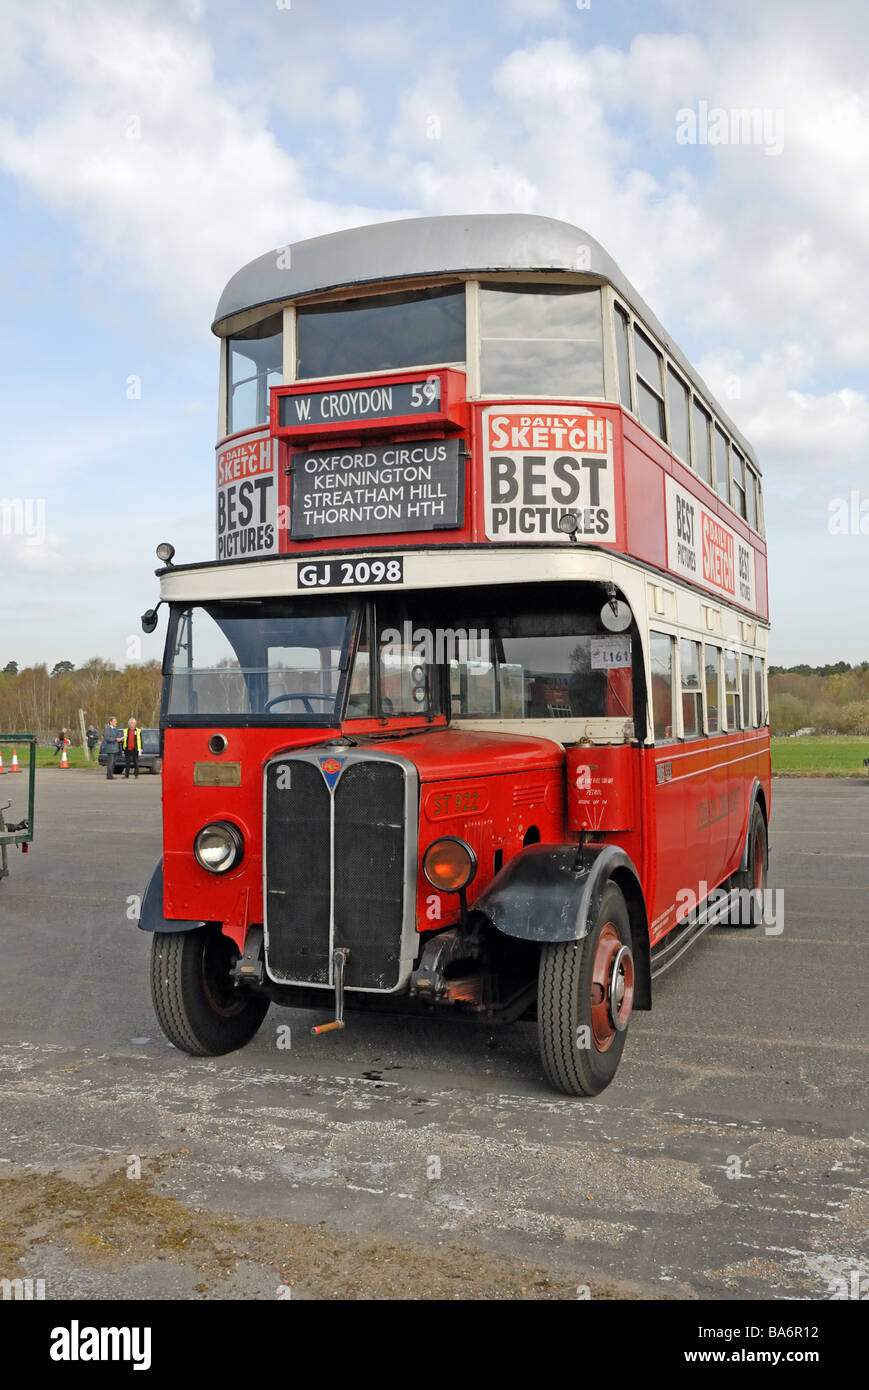 Front view of GJ 2098 a ST922 1930 2ST7 AEC Regent Tilling H27 25RO bus  with an open stair 52 seat body presented in 1930s LT co